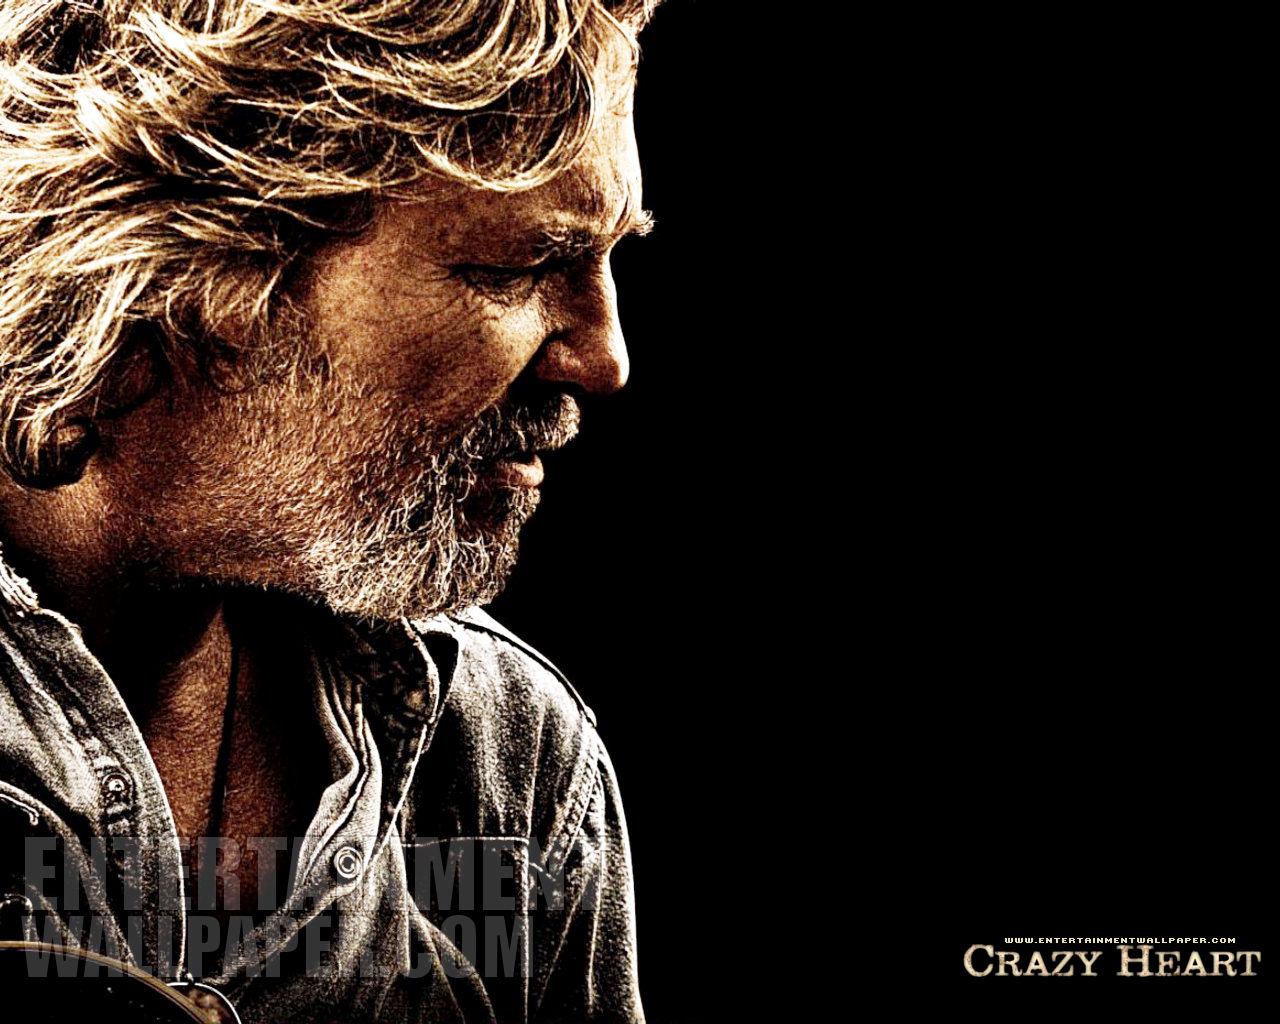 Crazy heart honored for depiction of addiction